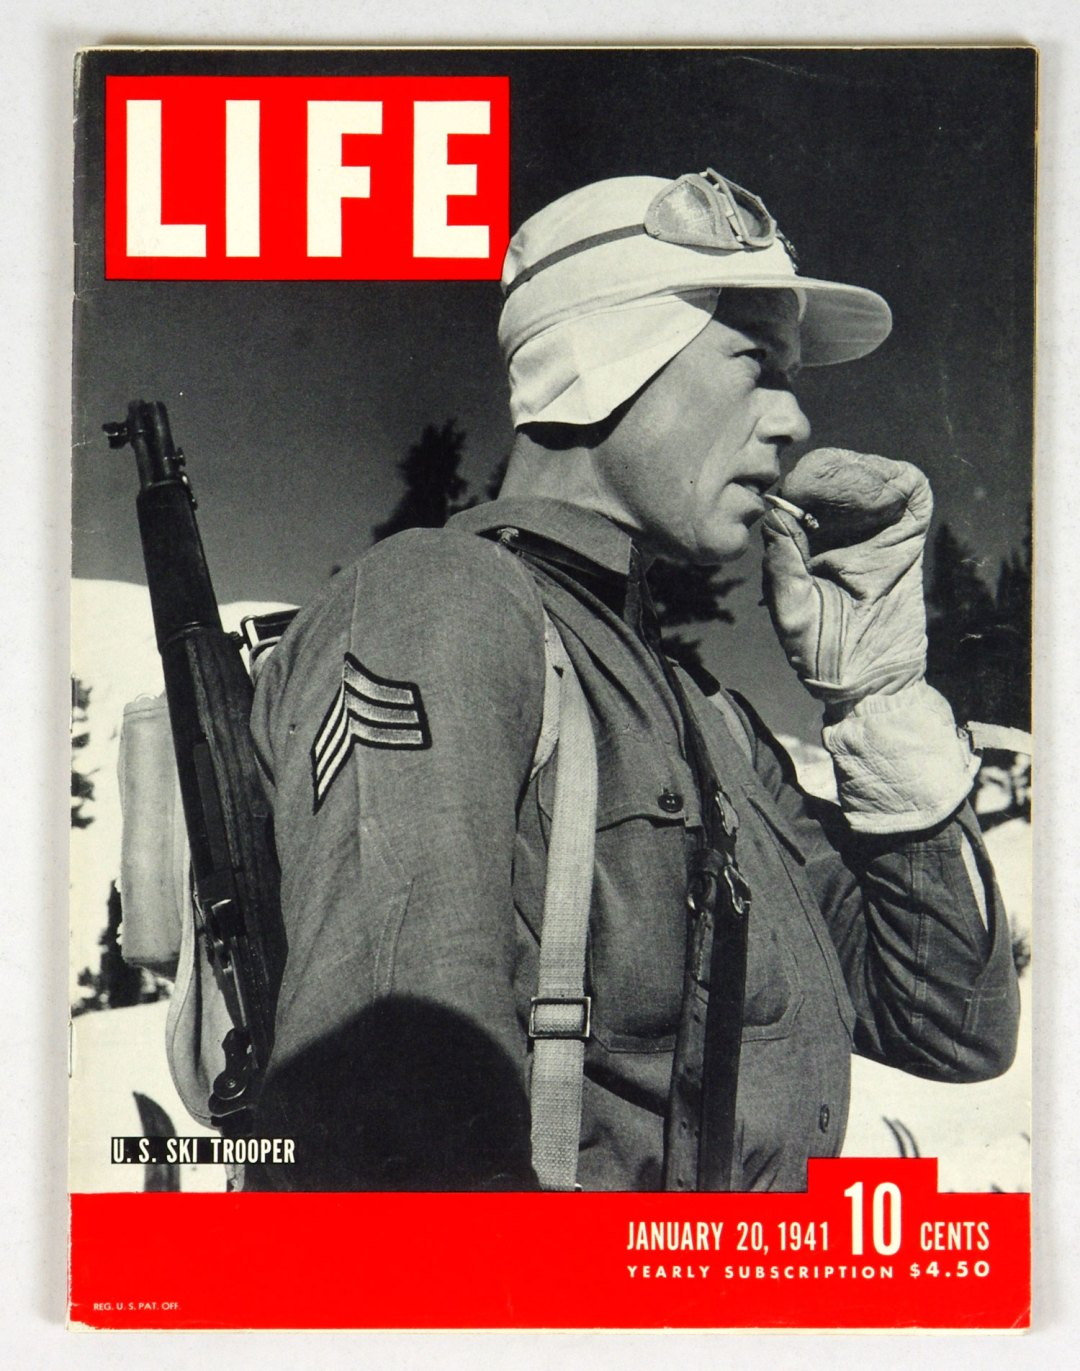 LIFE Magazine 1941 January 20 US Ski Trooper